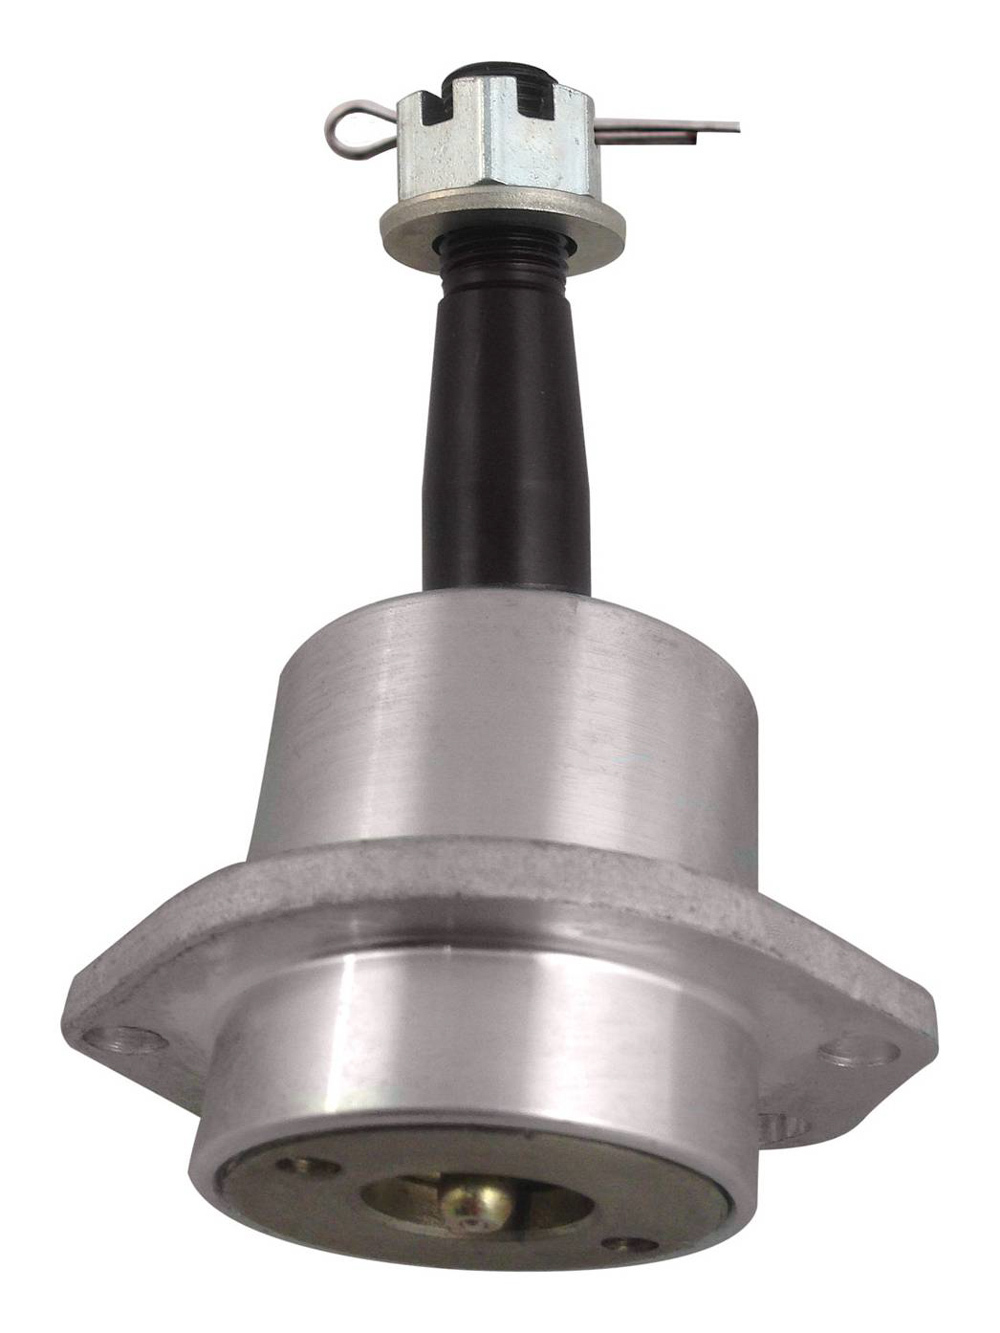 QA1 1210-203B Ball Joint, Greasable, Upper, Bolt-In, 2.000 in/ft Taper, 4.350 in Stud, 1/2-20 in Thread, Steel, Each